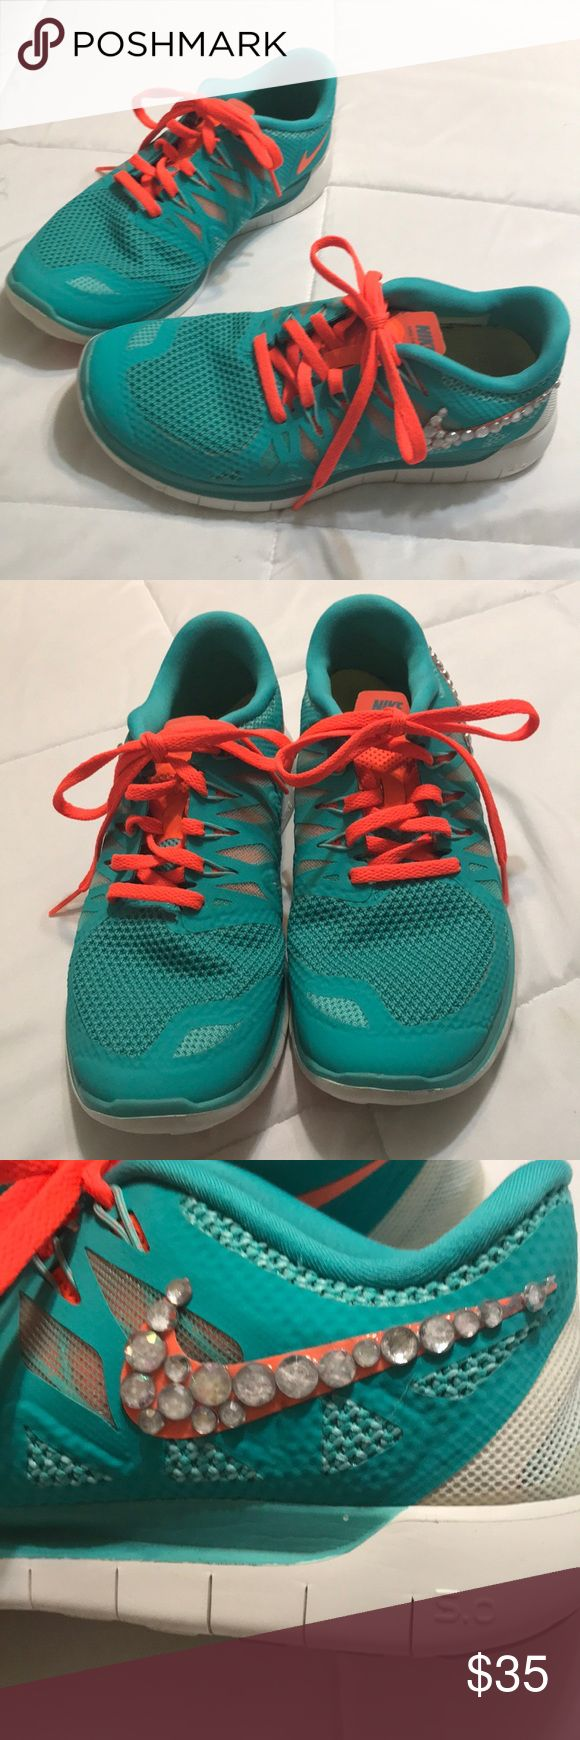 Women's Nike Free run shoes Good condition size 8, I custom the rhinestones on the Nike sign Nike Shoes Sneakers